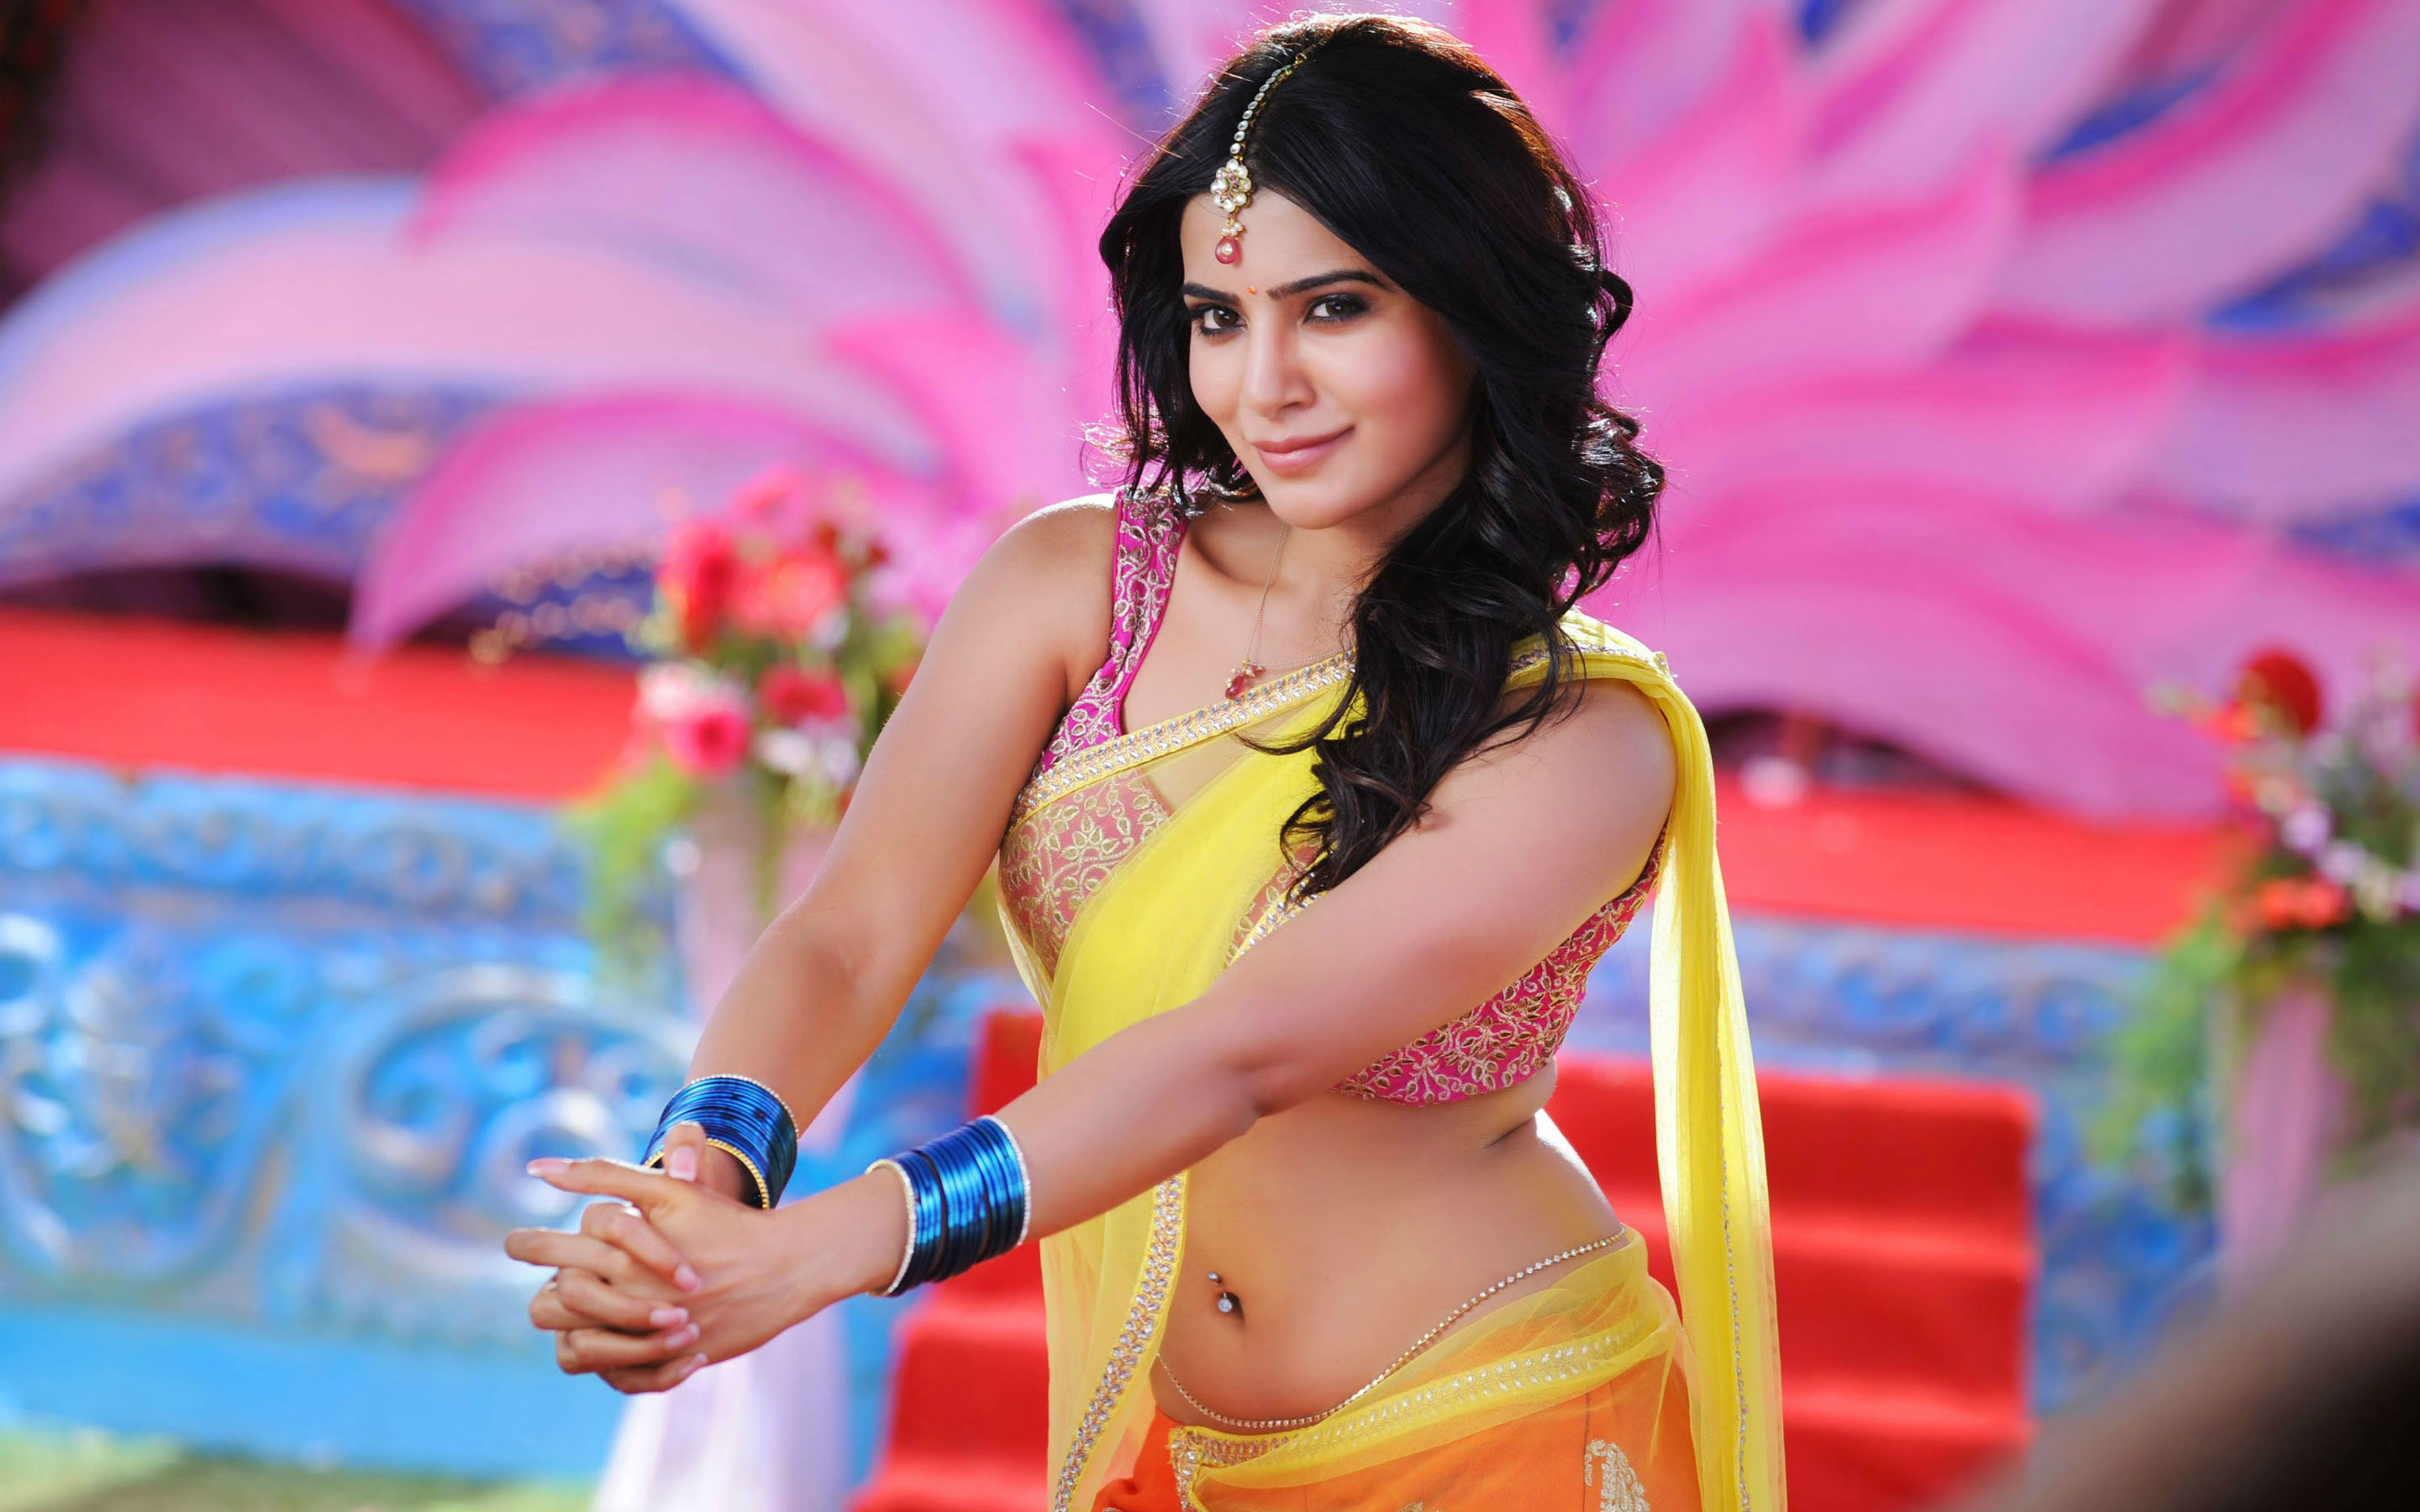 Samantha hot sexy images